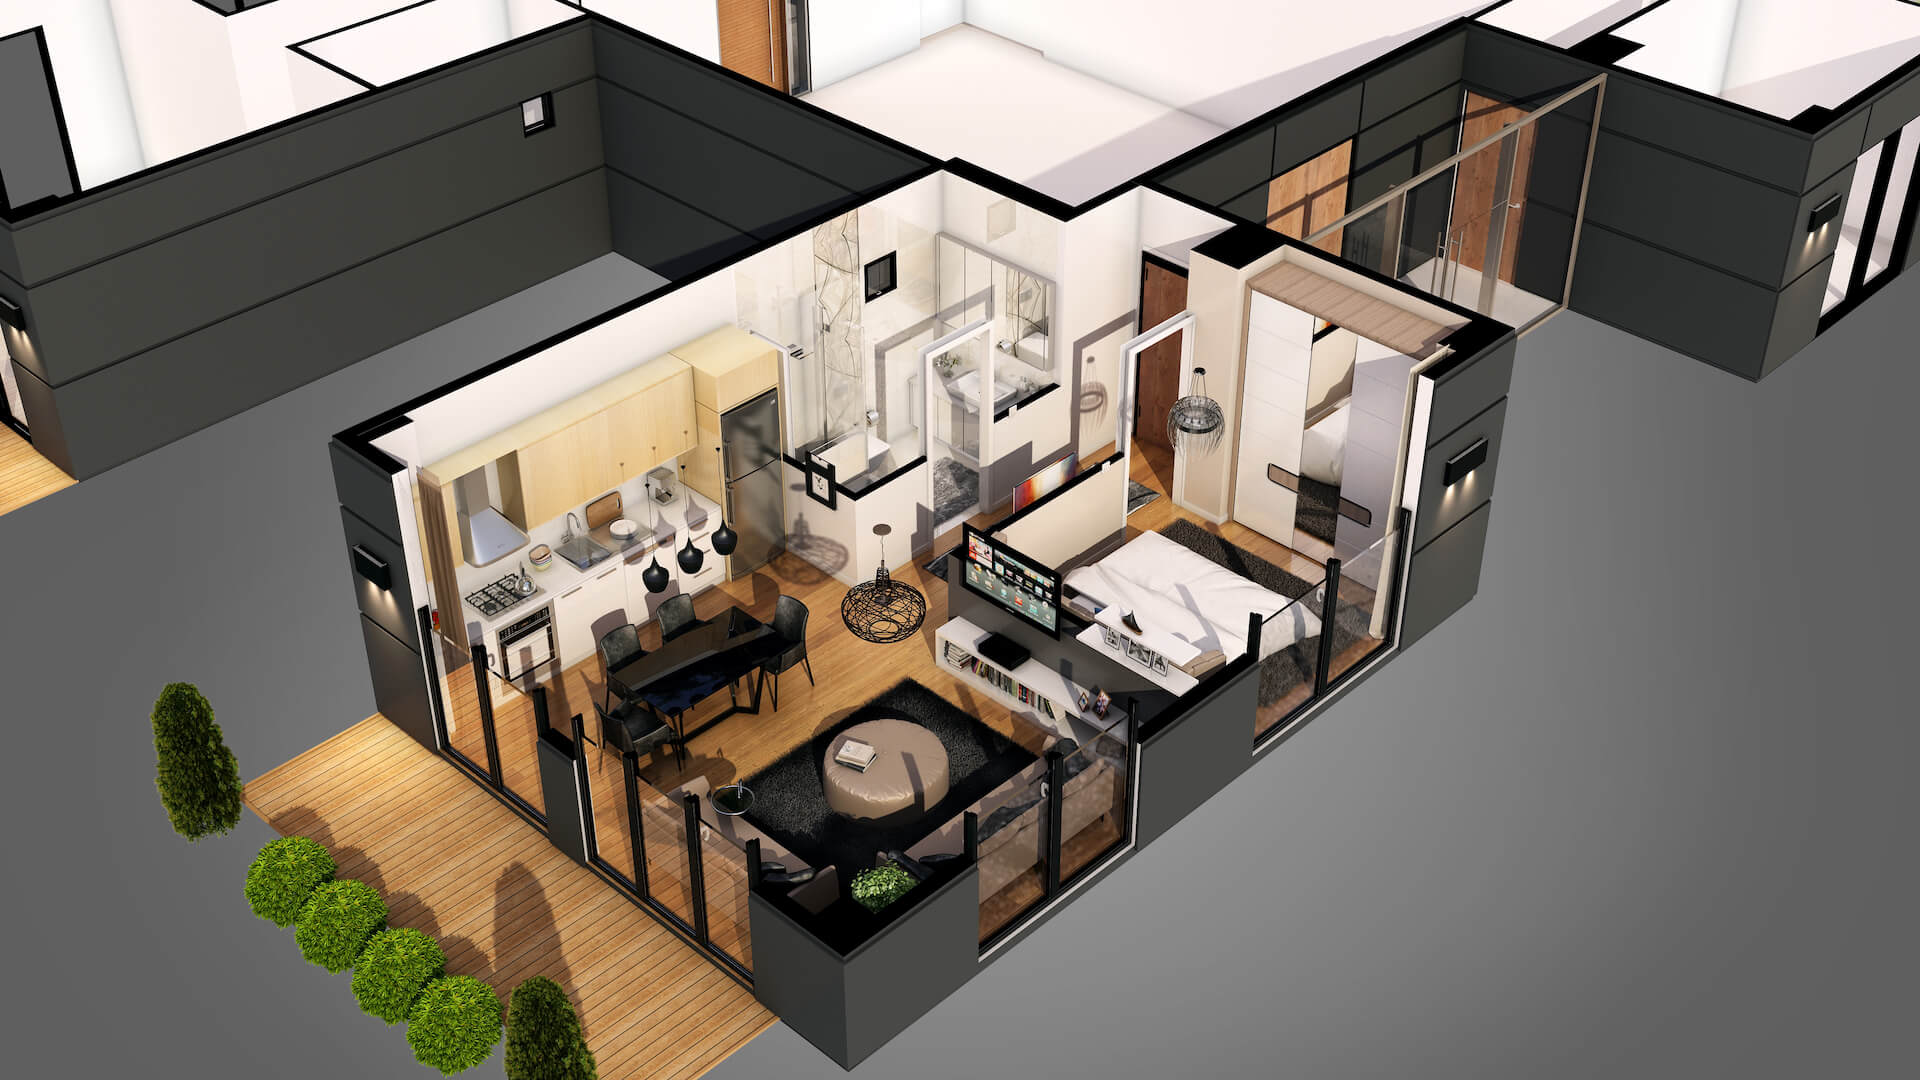 3D Floor Plan of a Compact Apartment